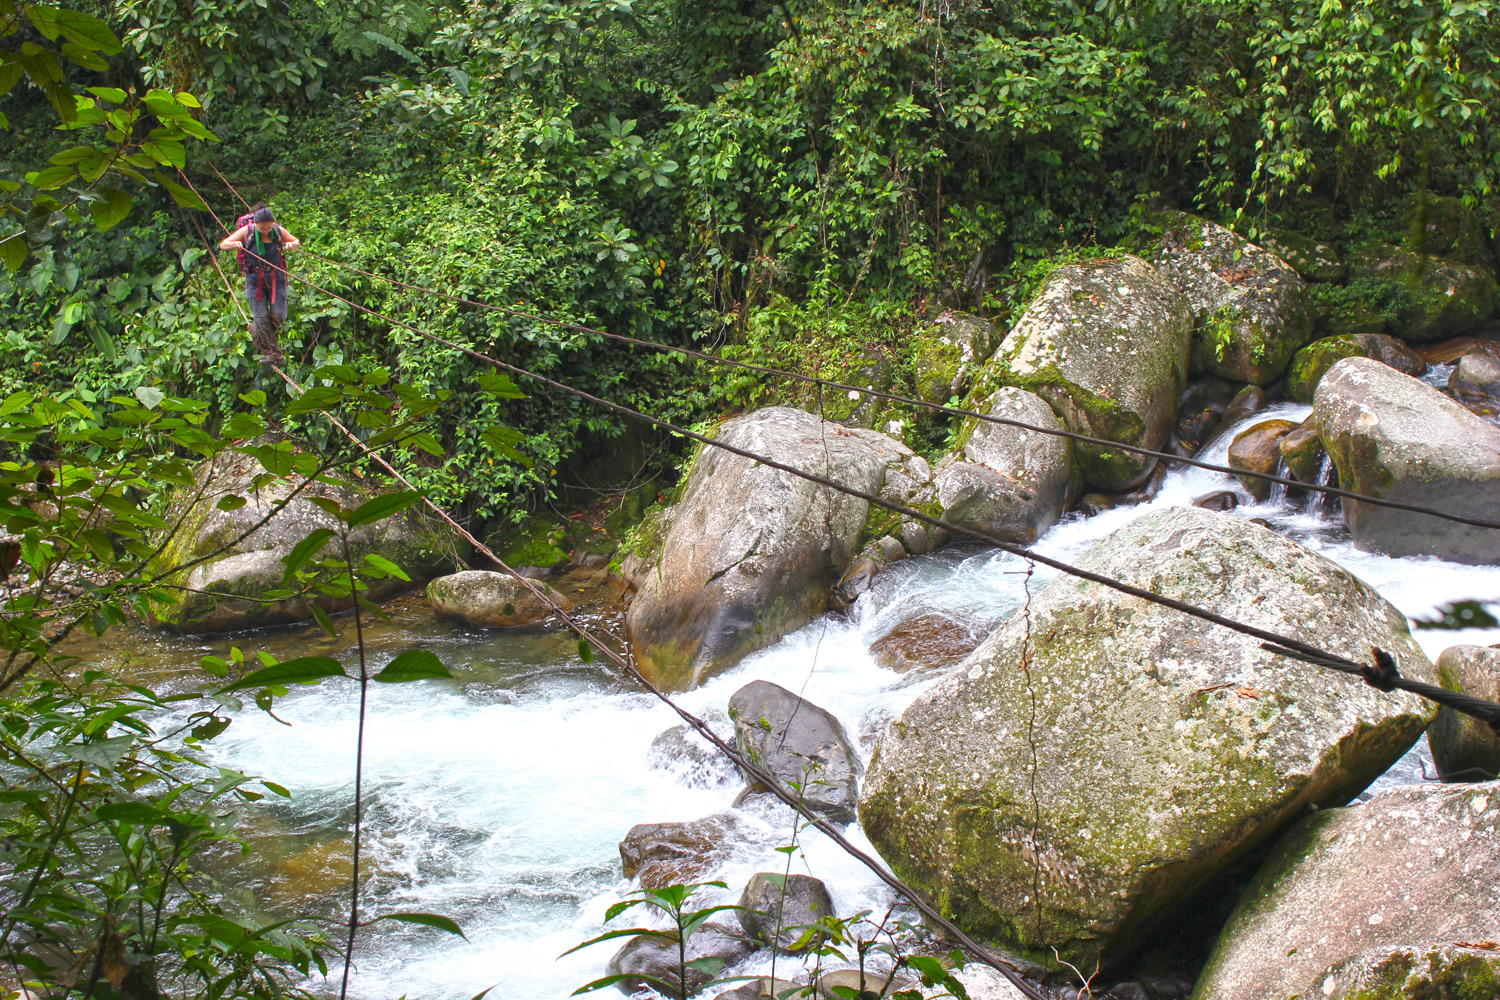 During rainy seasons, RioChanguinola must be crossed on makeshift cables tied to trees. We crossed this river close to a dozen times, three of which required use of such a bridge.